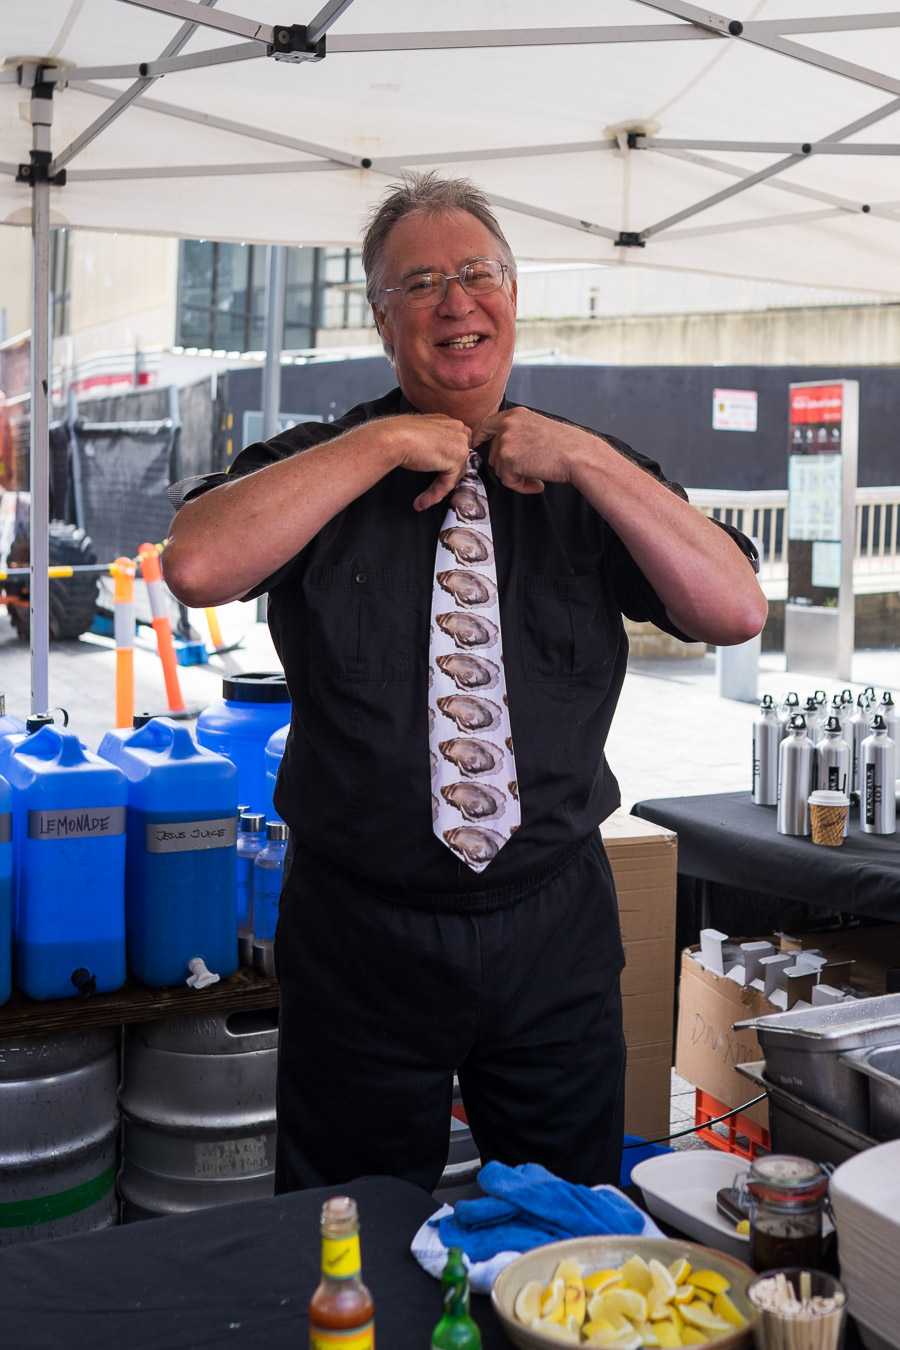 I caught Jerry Fraser putting  on his oyster tie.